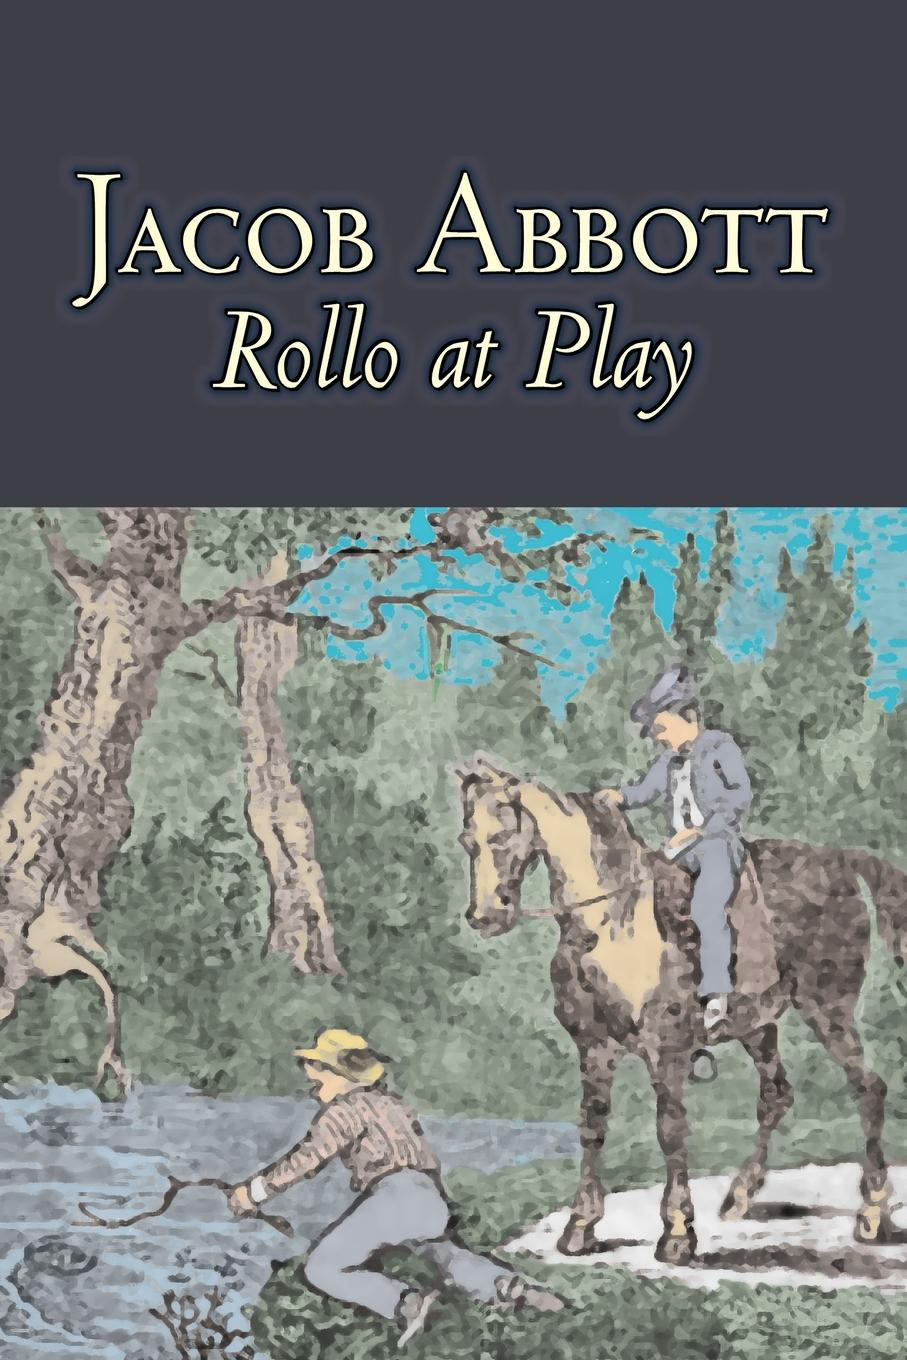 Jacob Abbott Rollo at Play by Jacob Abbott, Juvenile Fiction, Action & Adventure then we come to the end